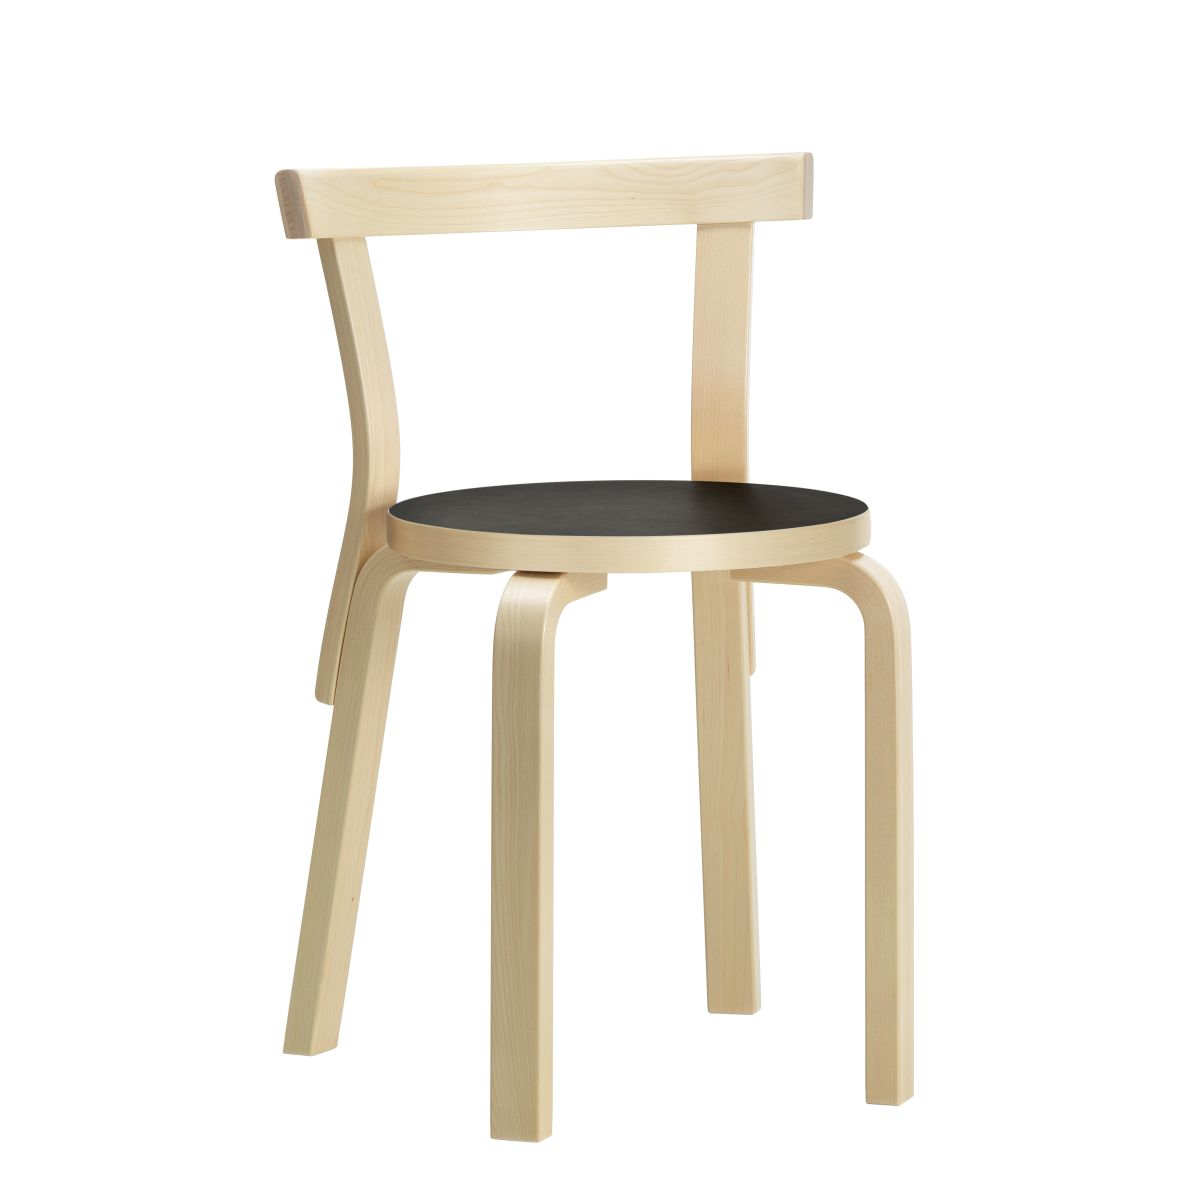 Chair-68-birch-natural-lacquered-seat-black-linoleum_F-2912693